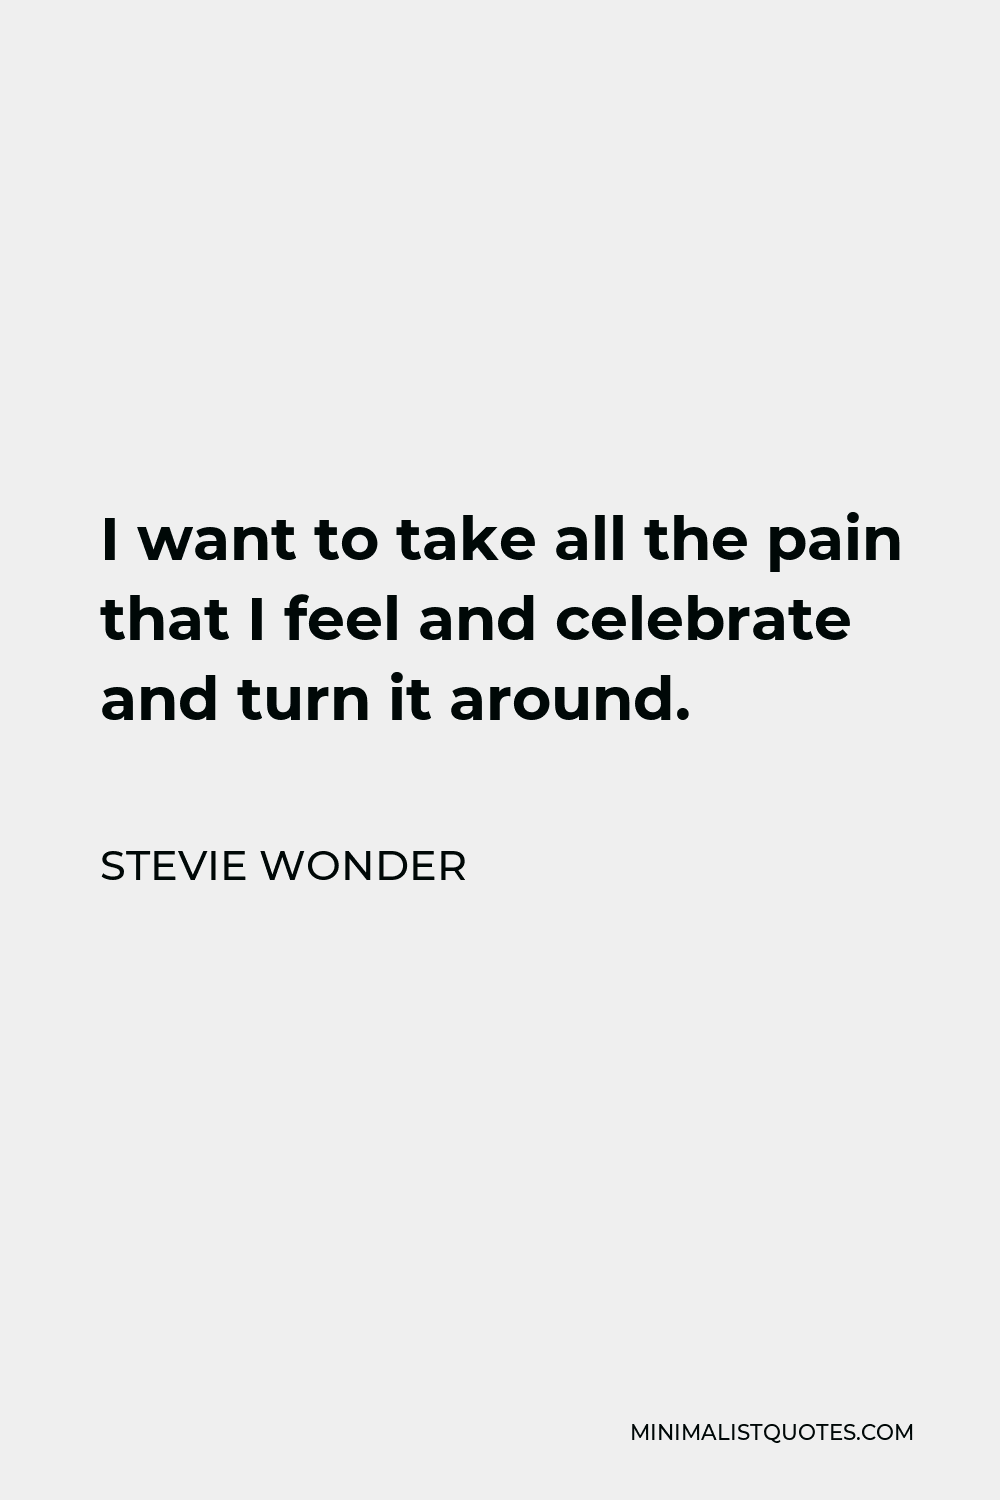 Stevie Wonder Quote - I want to take all the pain that I feel and celebrate and turn it around.